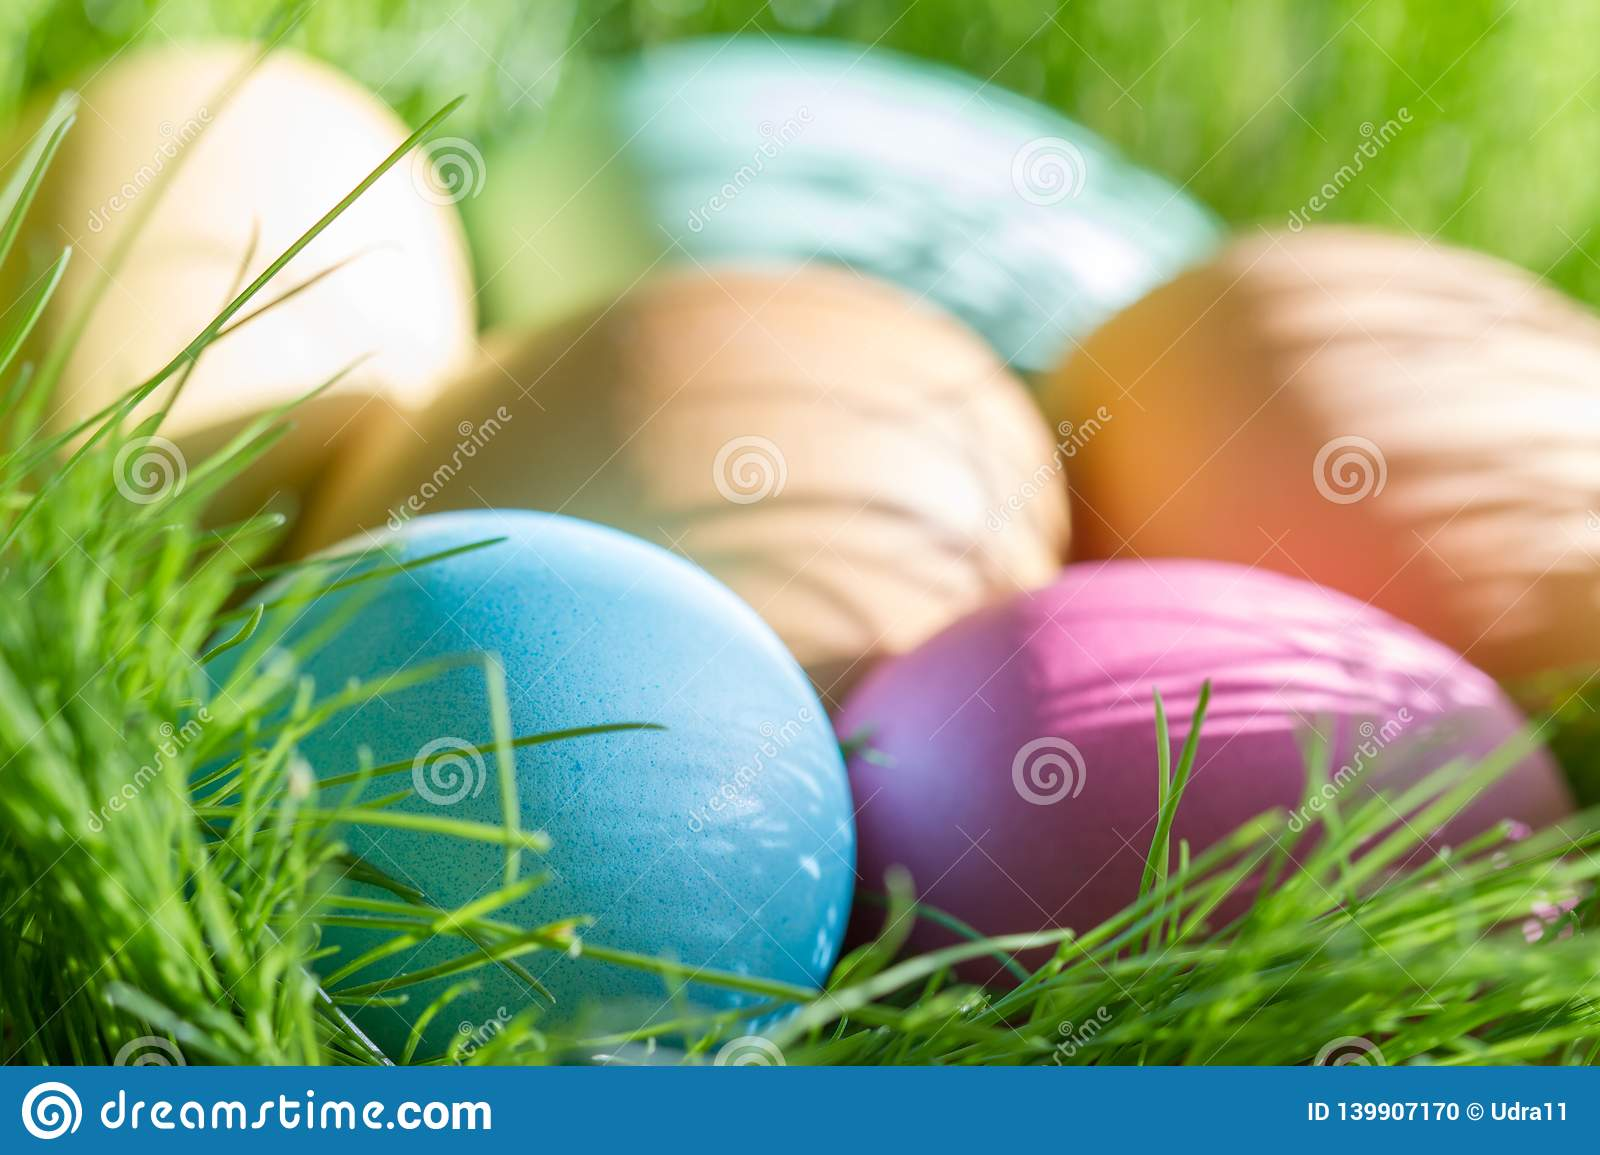 Easter colorful eggs in spring green grass in sunlight floral abstract background